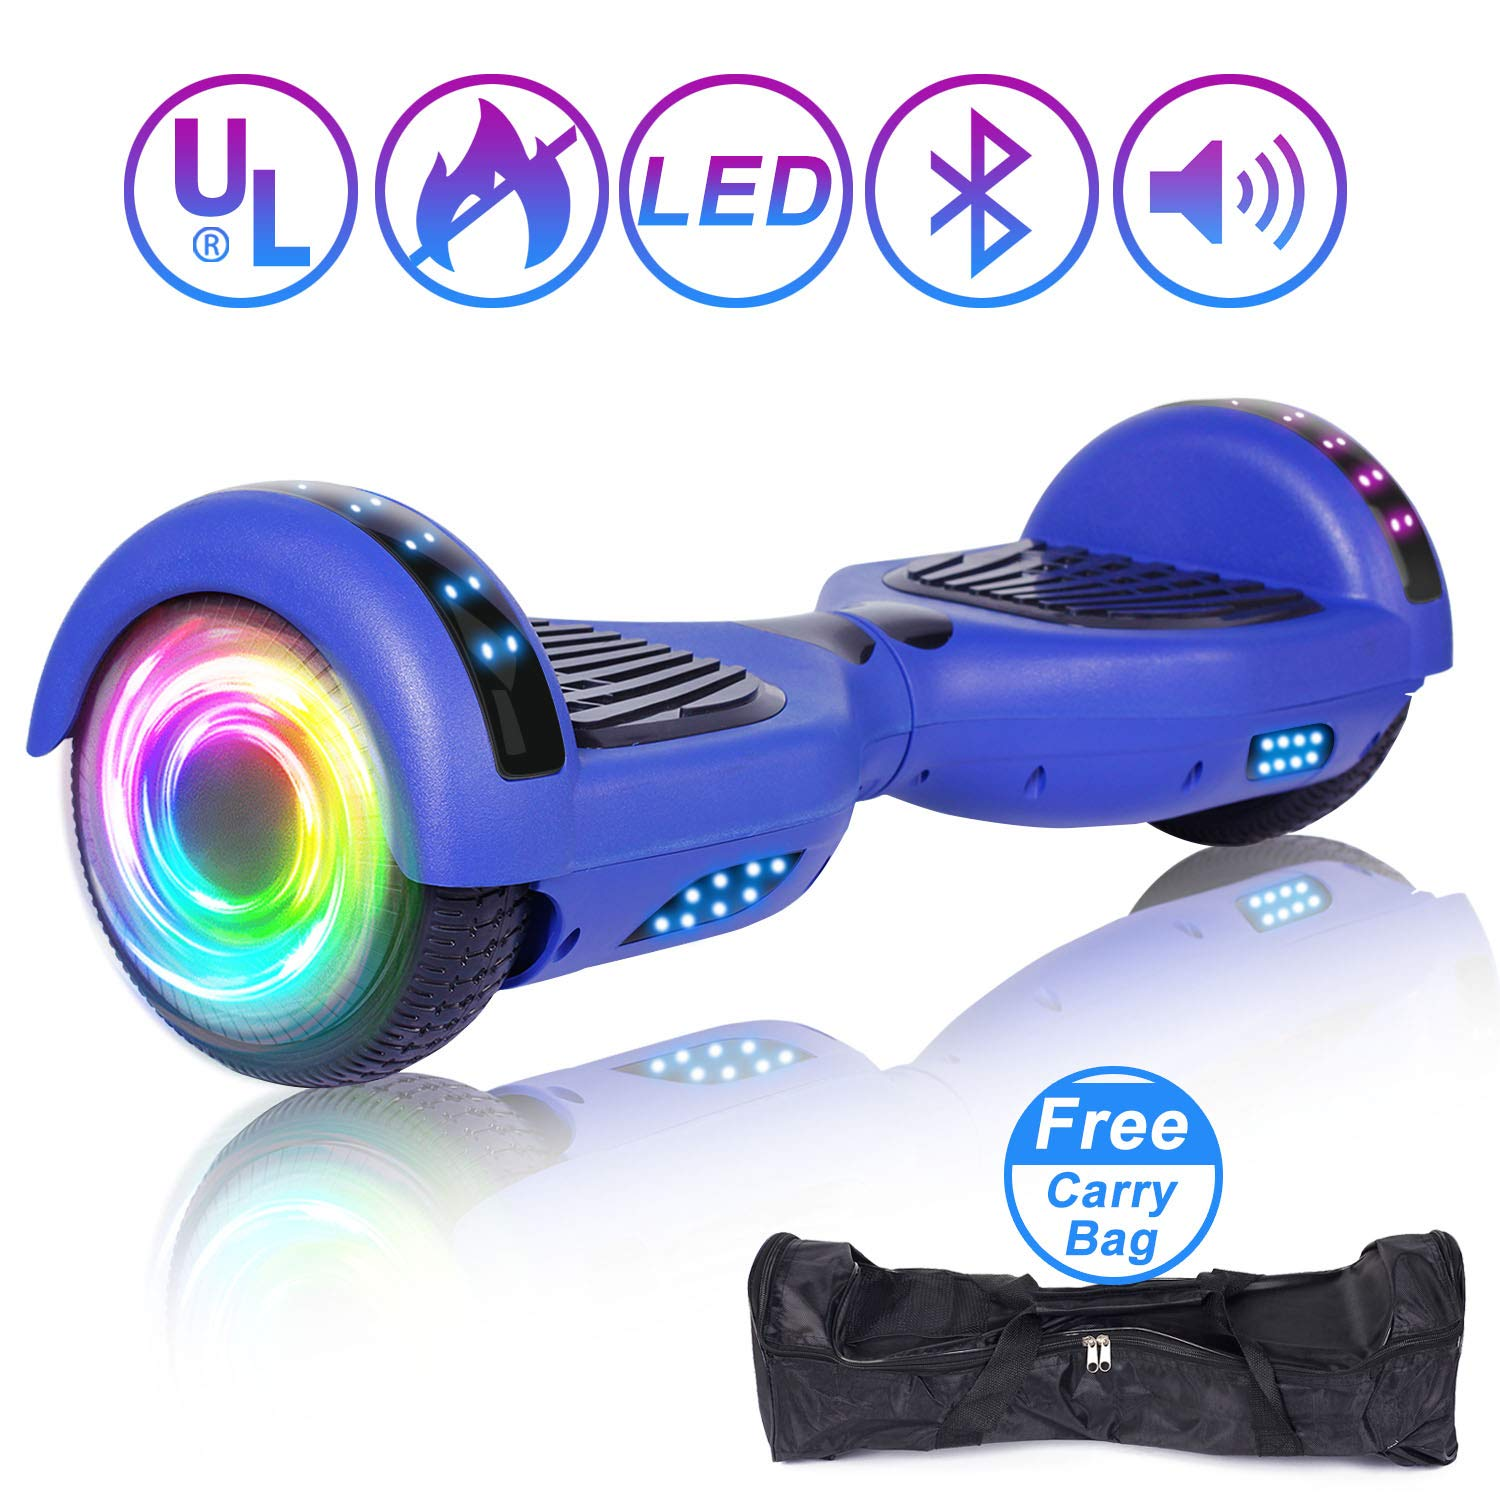 SISIGAD Hoverboard 6.5'' Self Balancing Scooter with Colorful LED Wheels Lights Two-Wheels self Balancing Hoverboard Dual 300W Motors Hover Board UL2272 Certified(Free Carry Bag Available)